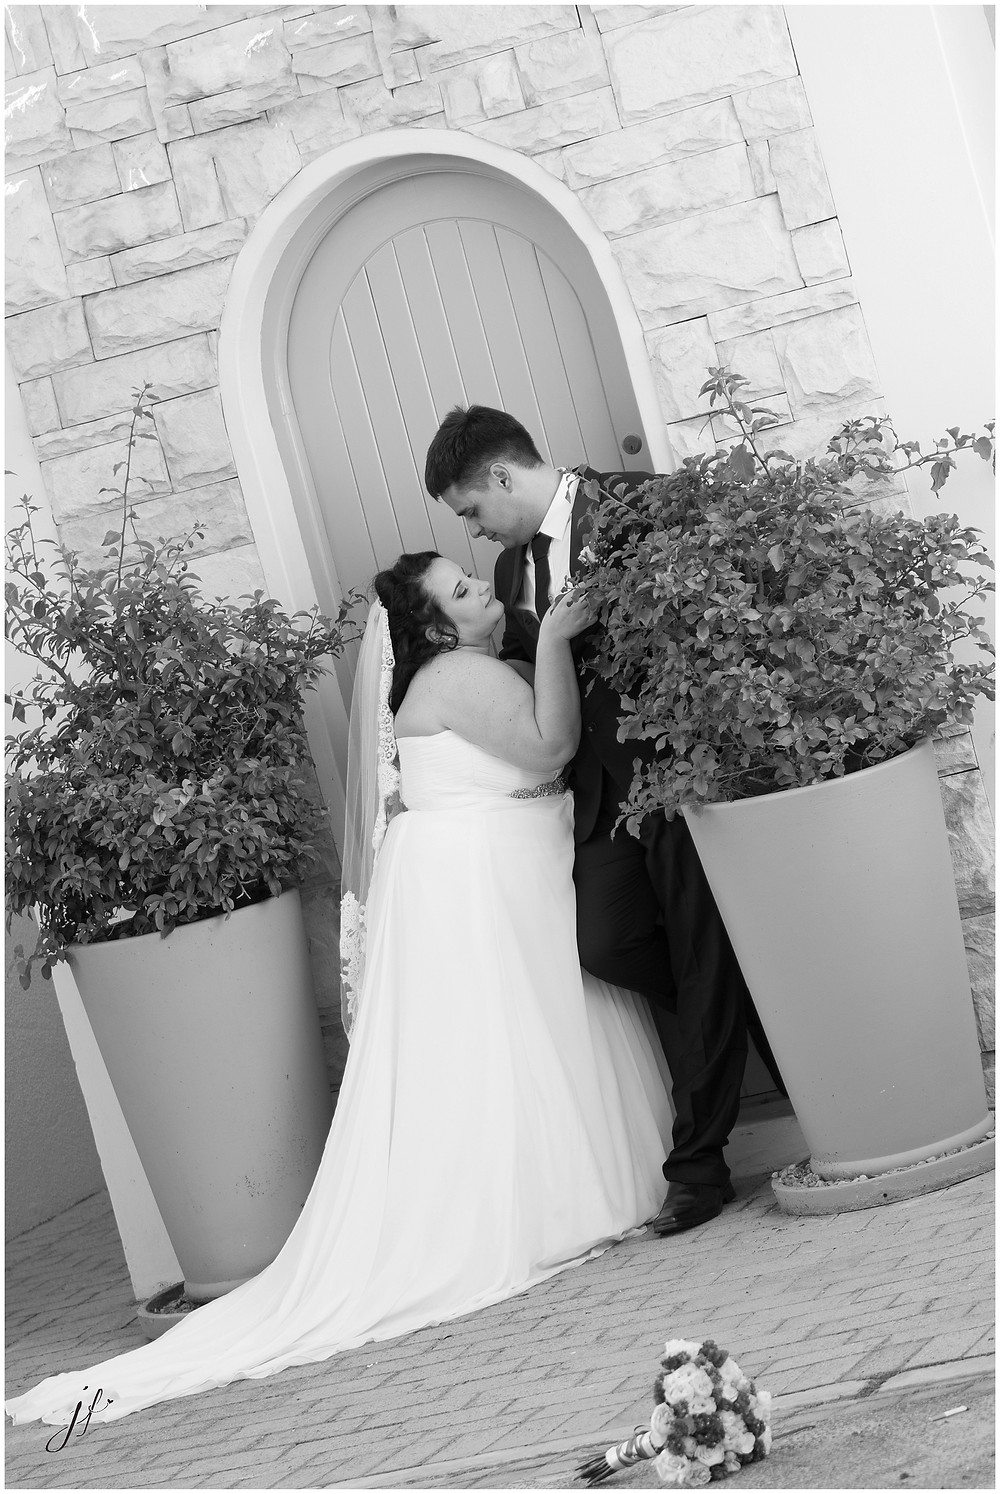 Wedding photo shoot in Sea Point by Jaqui Franco Photography from Cape Town